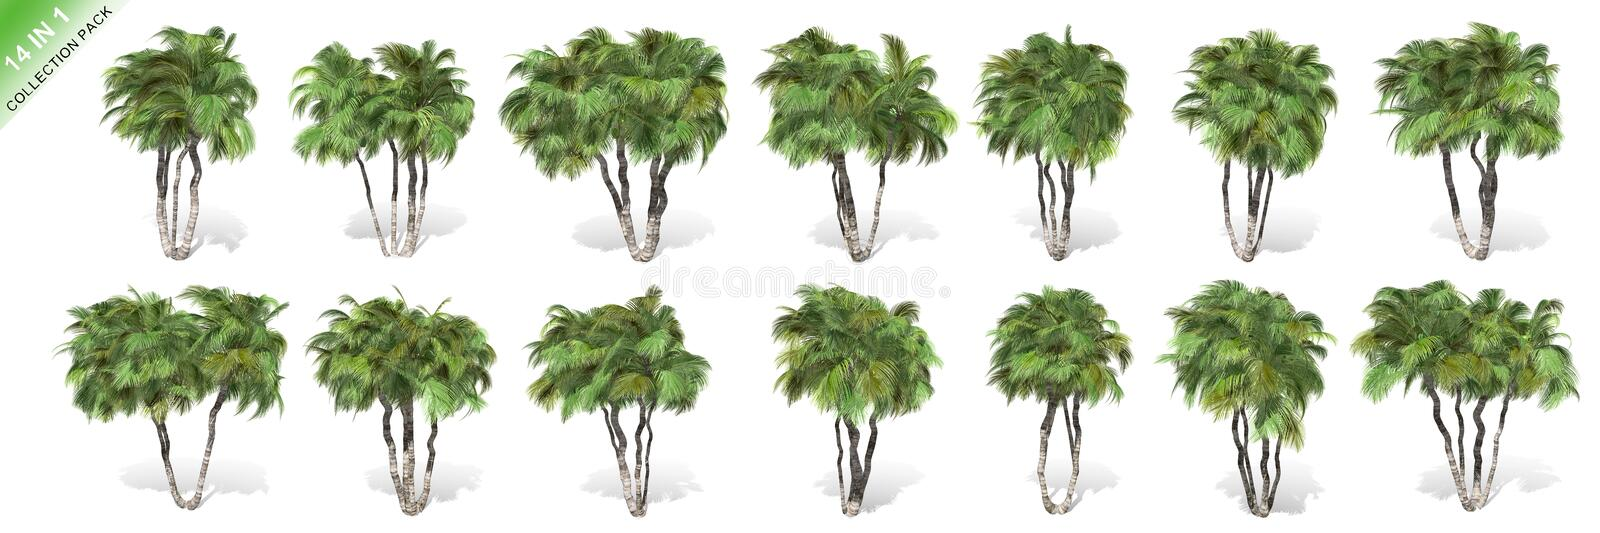 3D rendering - 14 in 1 collection of tall coconut trees isolated over a white background. Use for natural poster or wallpaper design, 3D illustration Design royalty free illustration